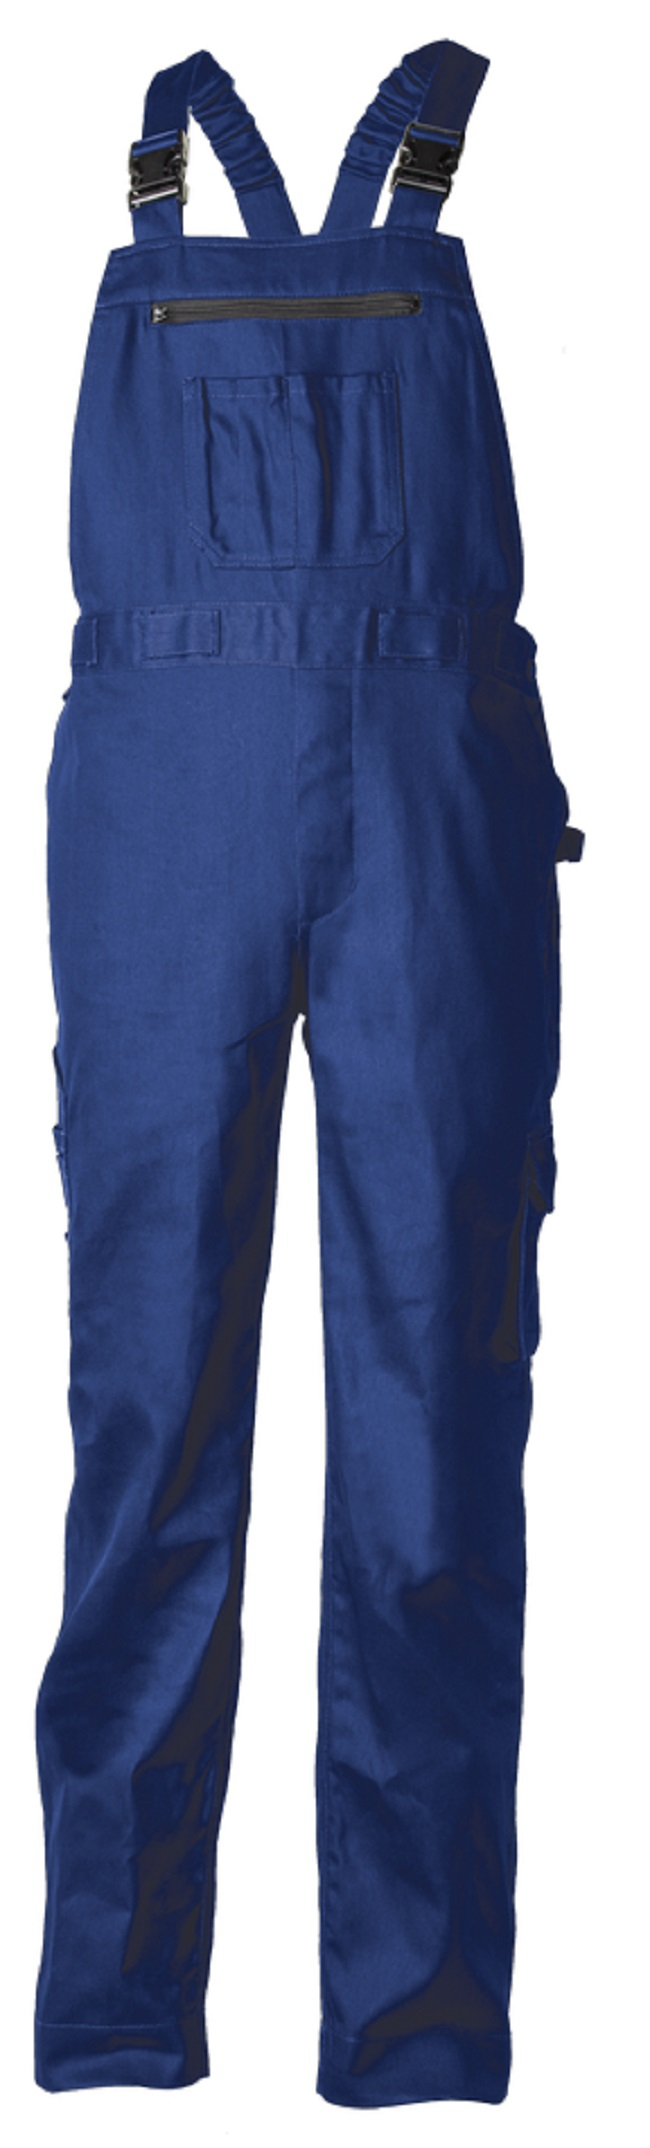 pantaloni-pieptar-technicity-royal